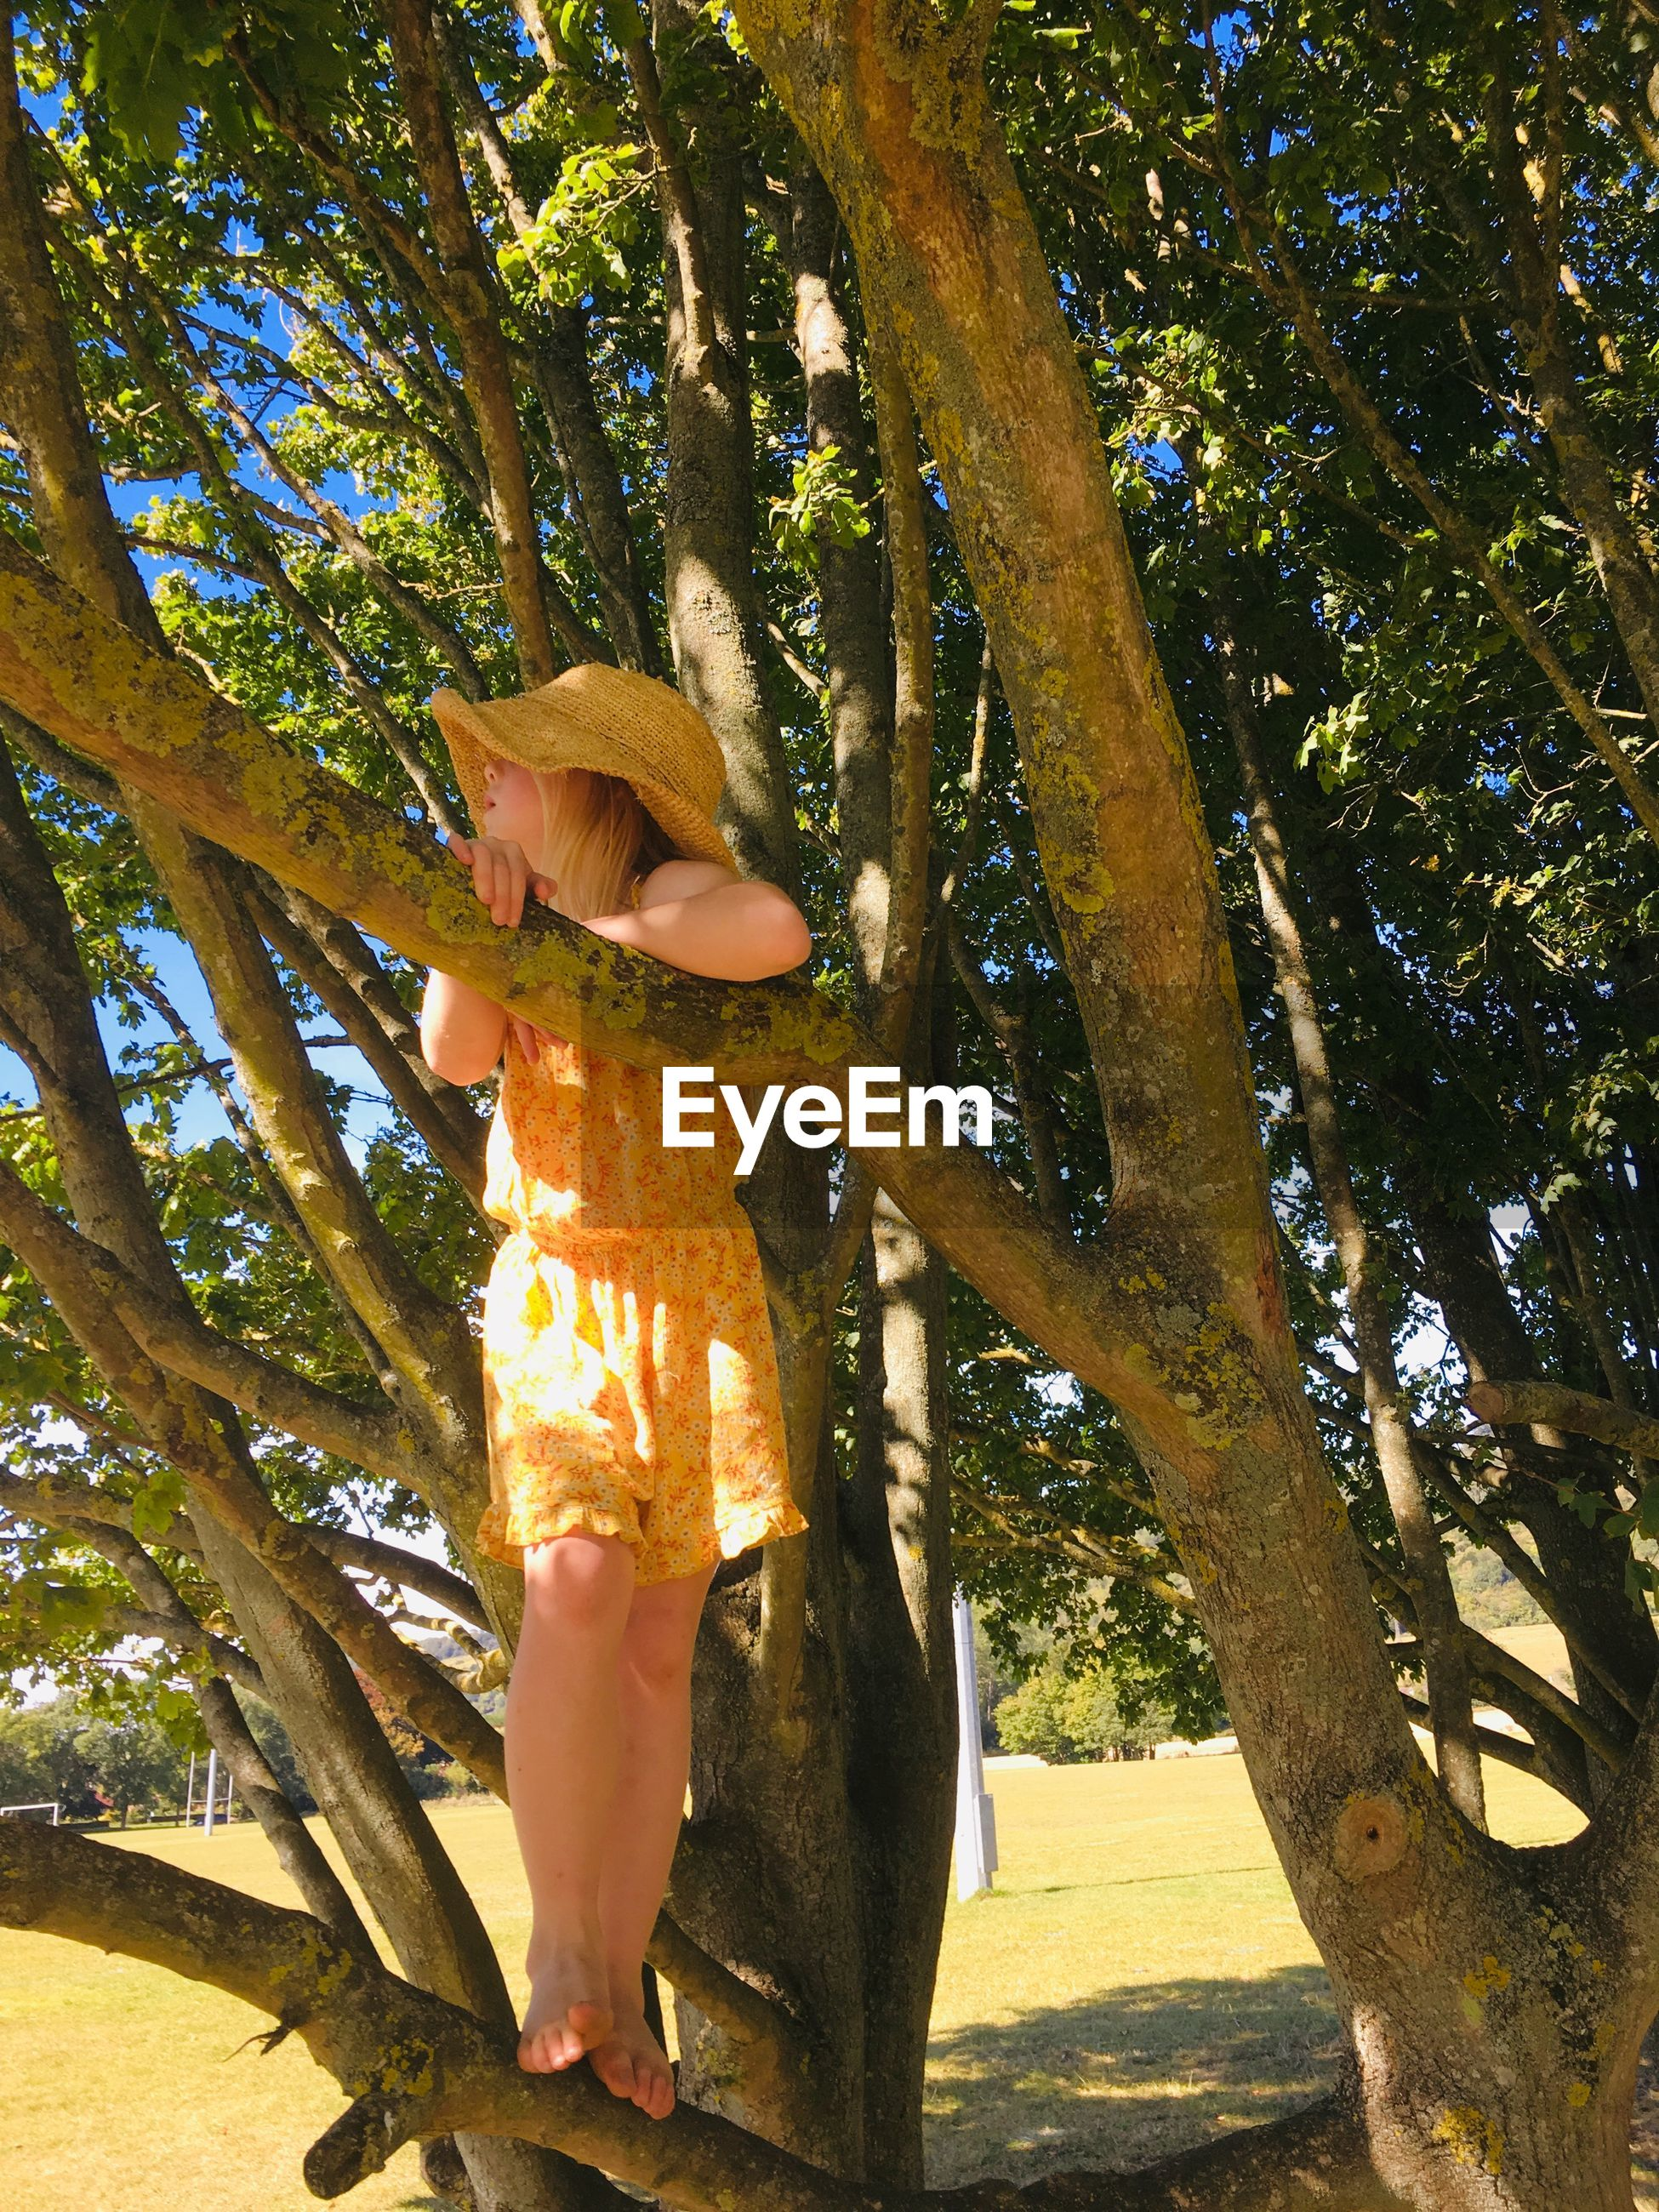 WOMAN STANDING AMIDST TREE TRUNK